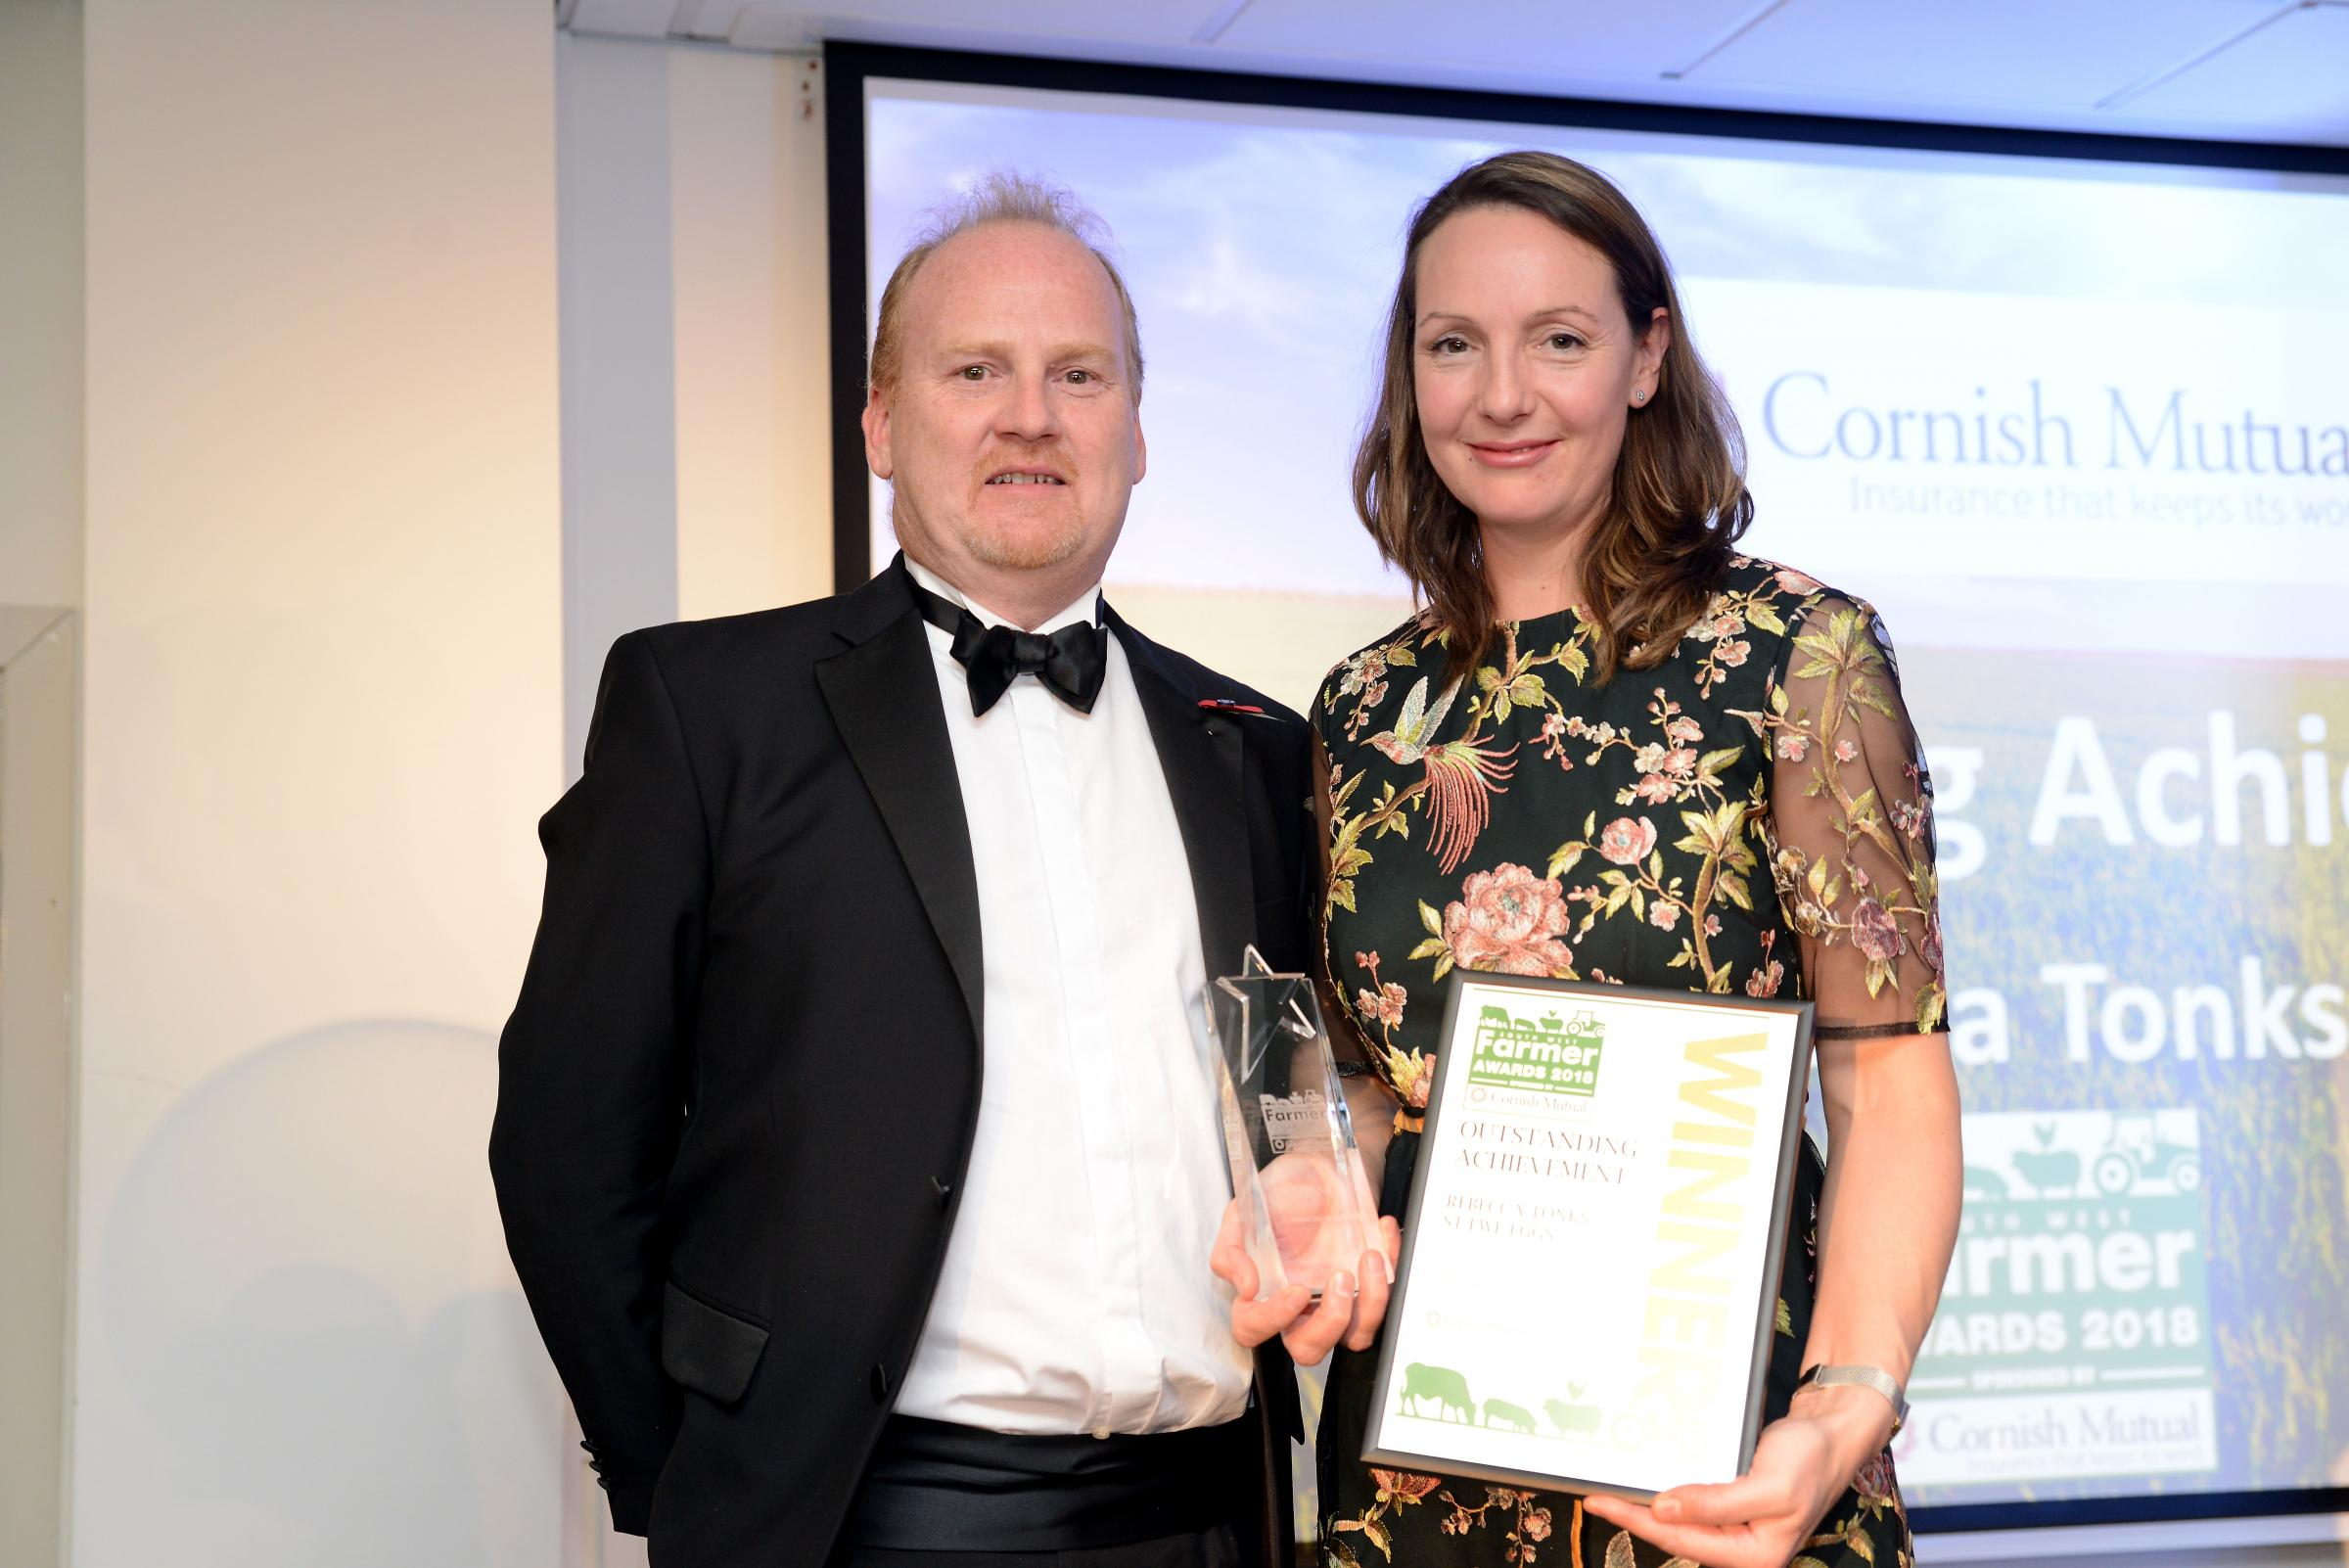 The South West Farmer Awards 2018. Pictured Peter Baumont from Cornish Mutual with Rebecca Tonks winner of the Outstanding achievement Award 2018.